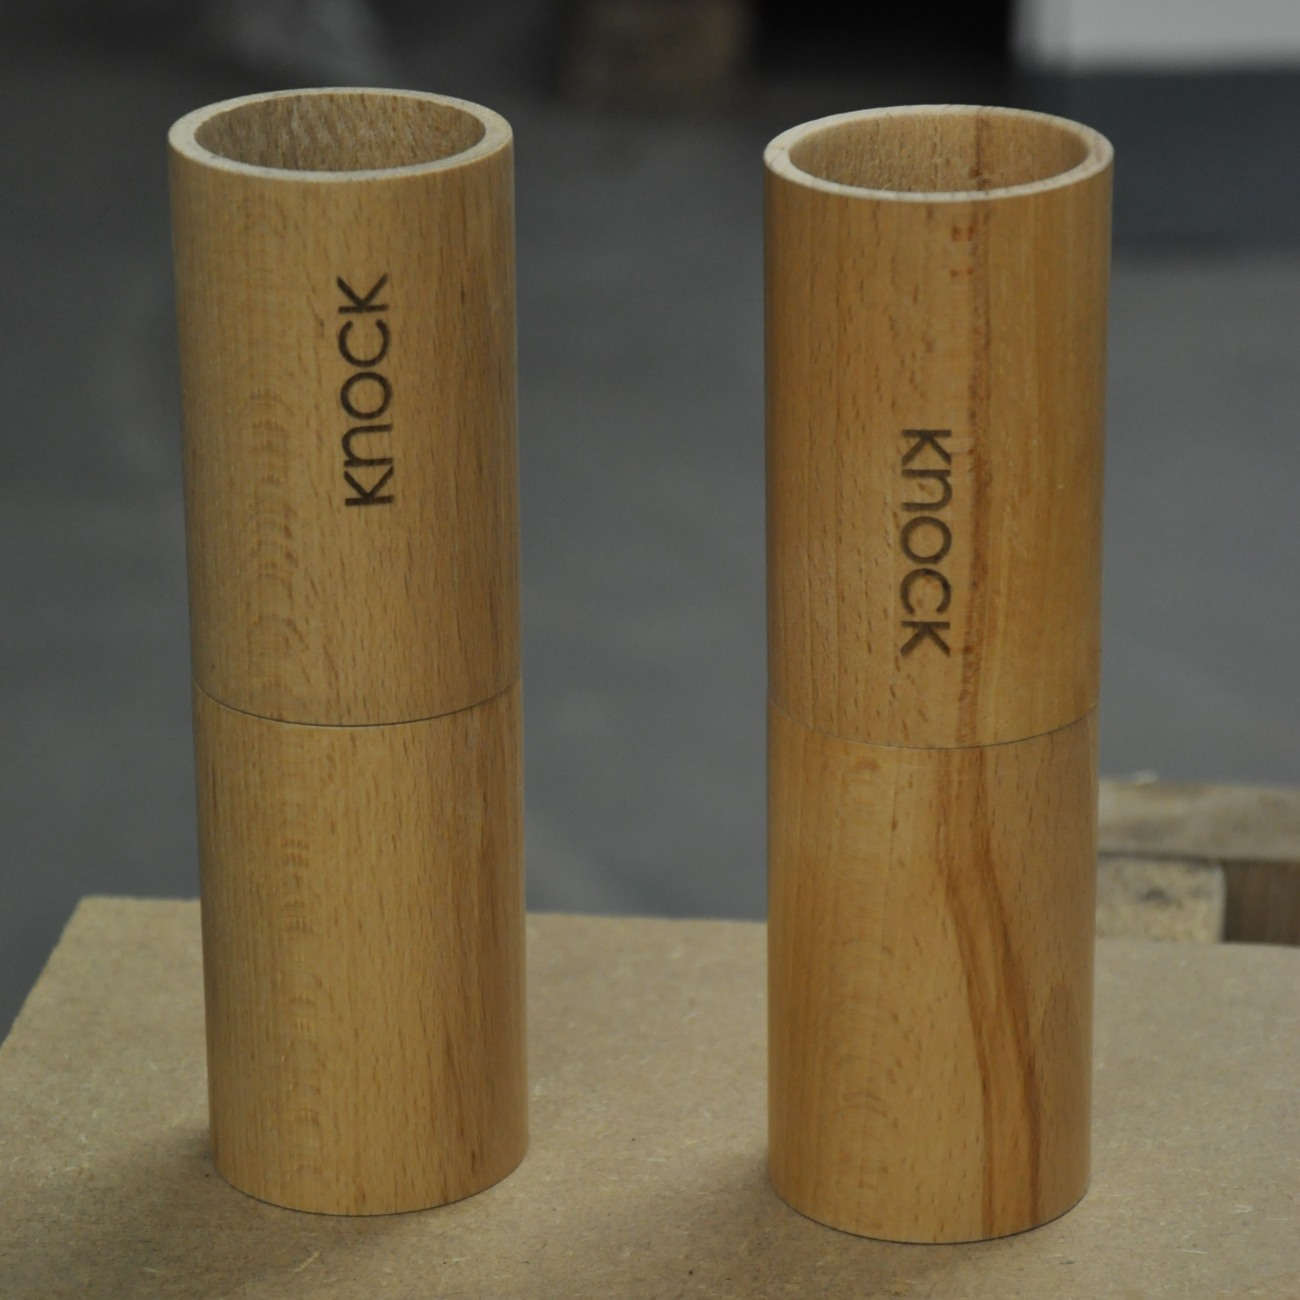 Two sets of wooden cylinders for Knock's feldgrind hand-grinders.